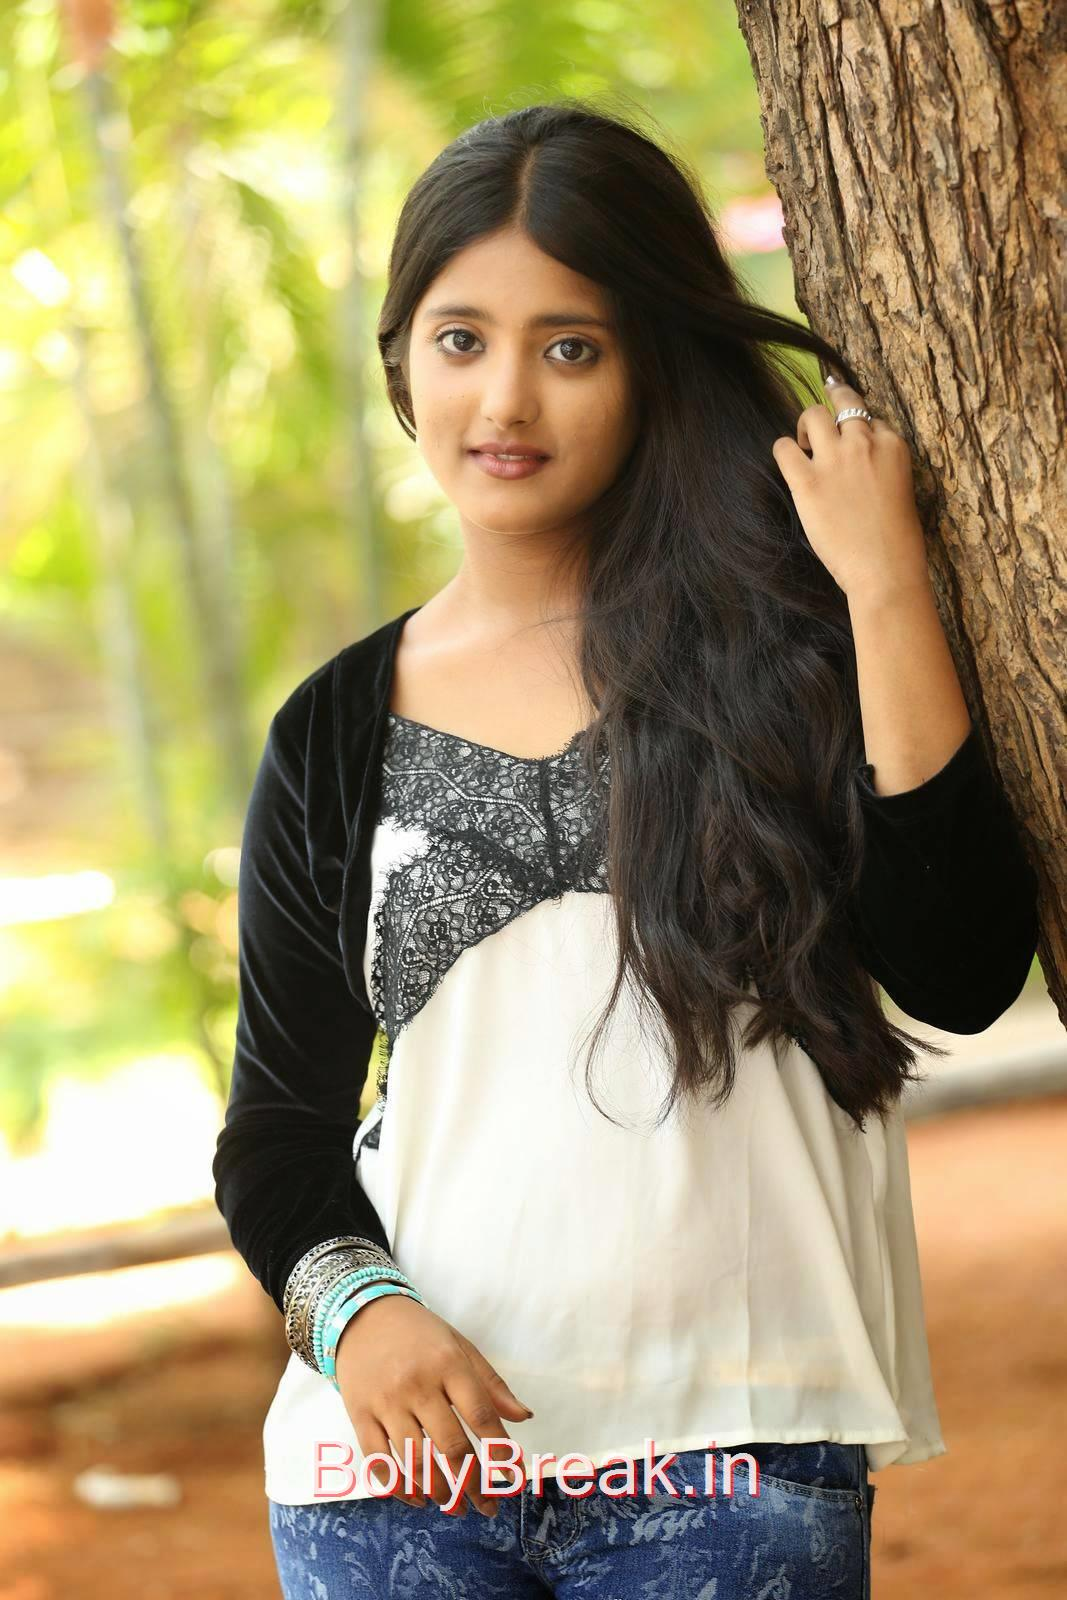 Ulka Gupta images, Cute, Sweet, Innocent Indian Actress Ulka Gupta hot HD Photo Gallery Pics